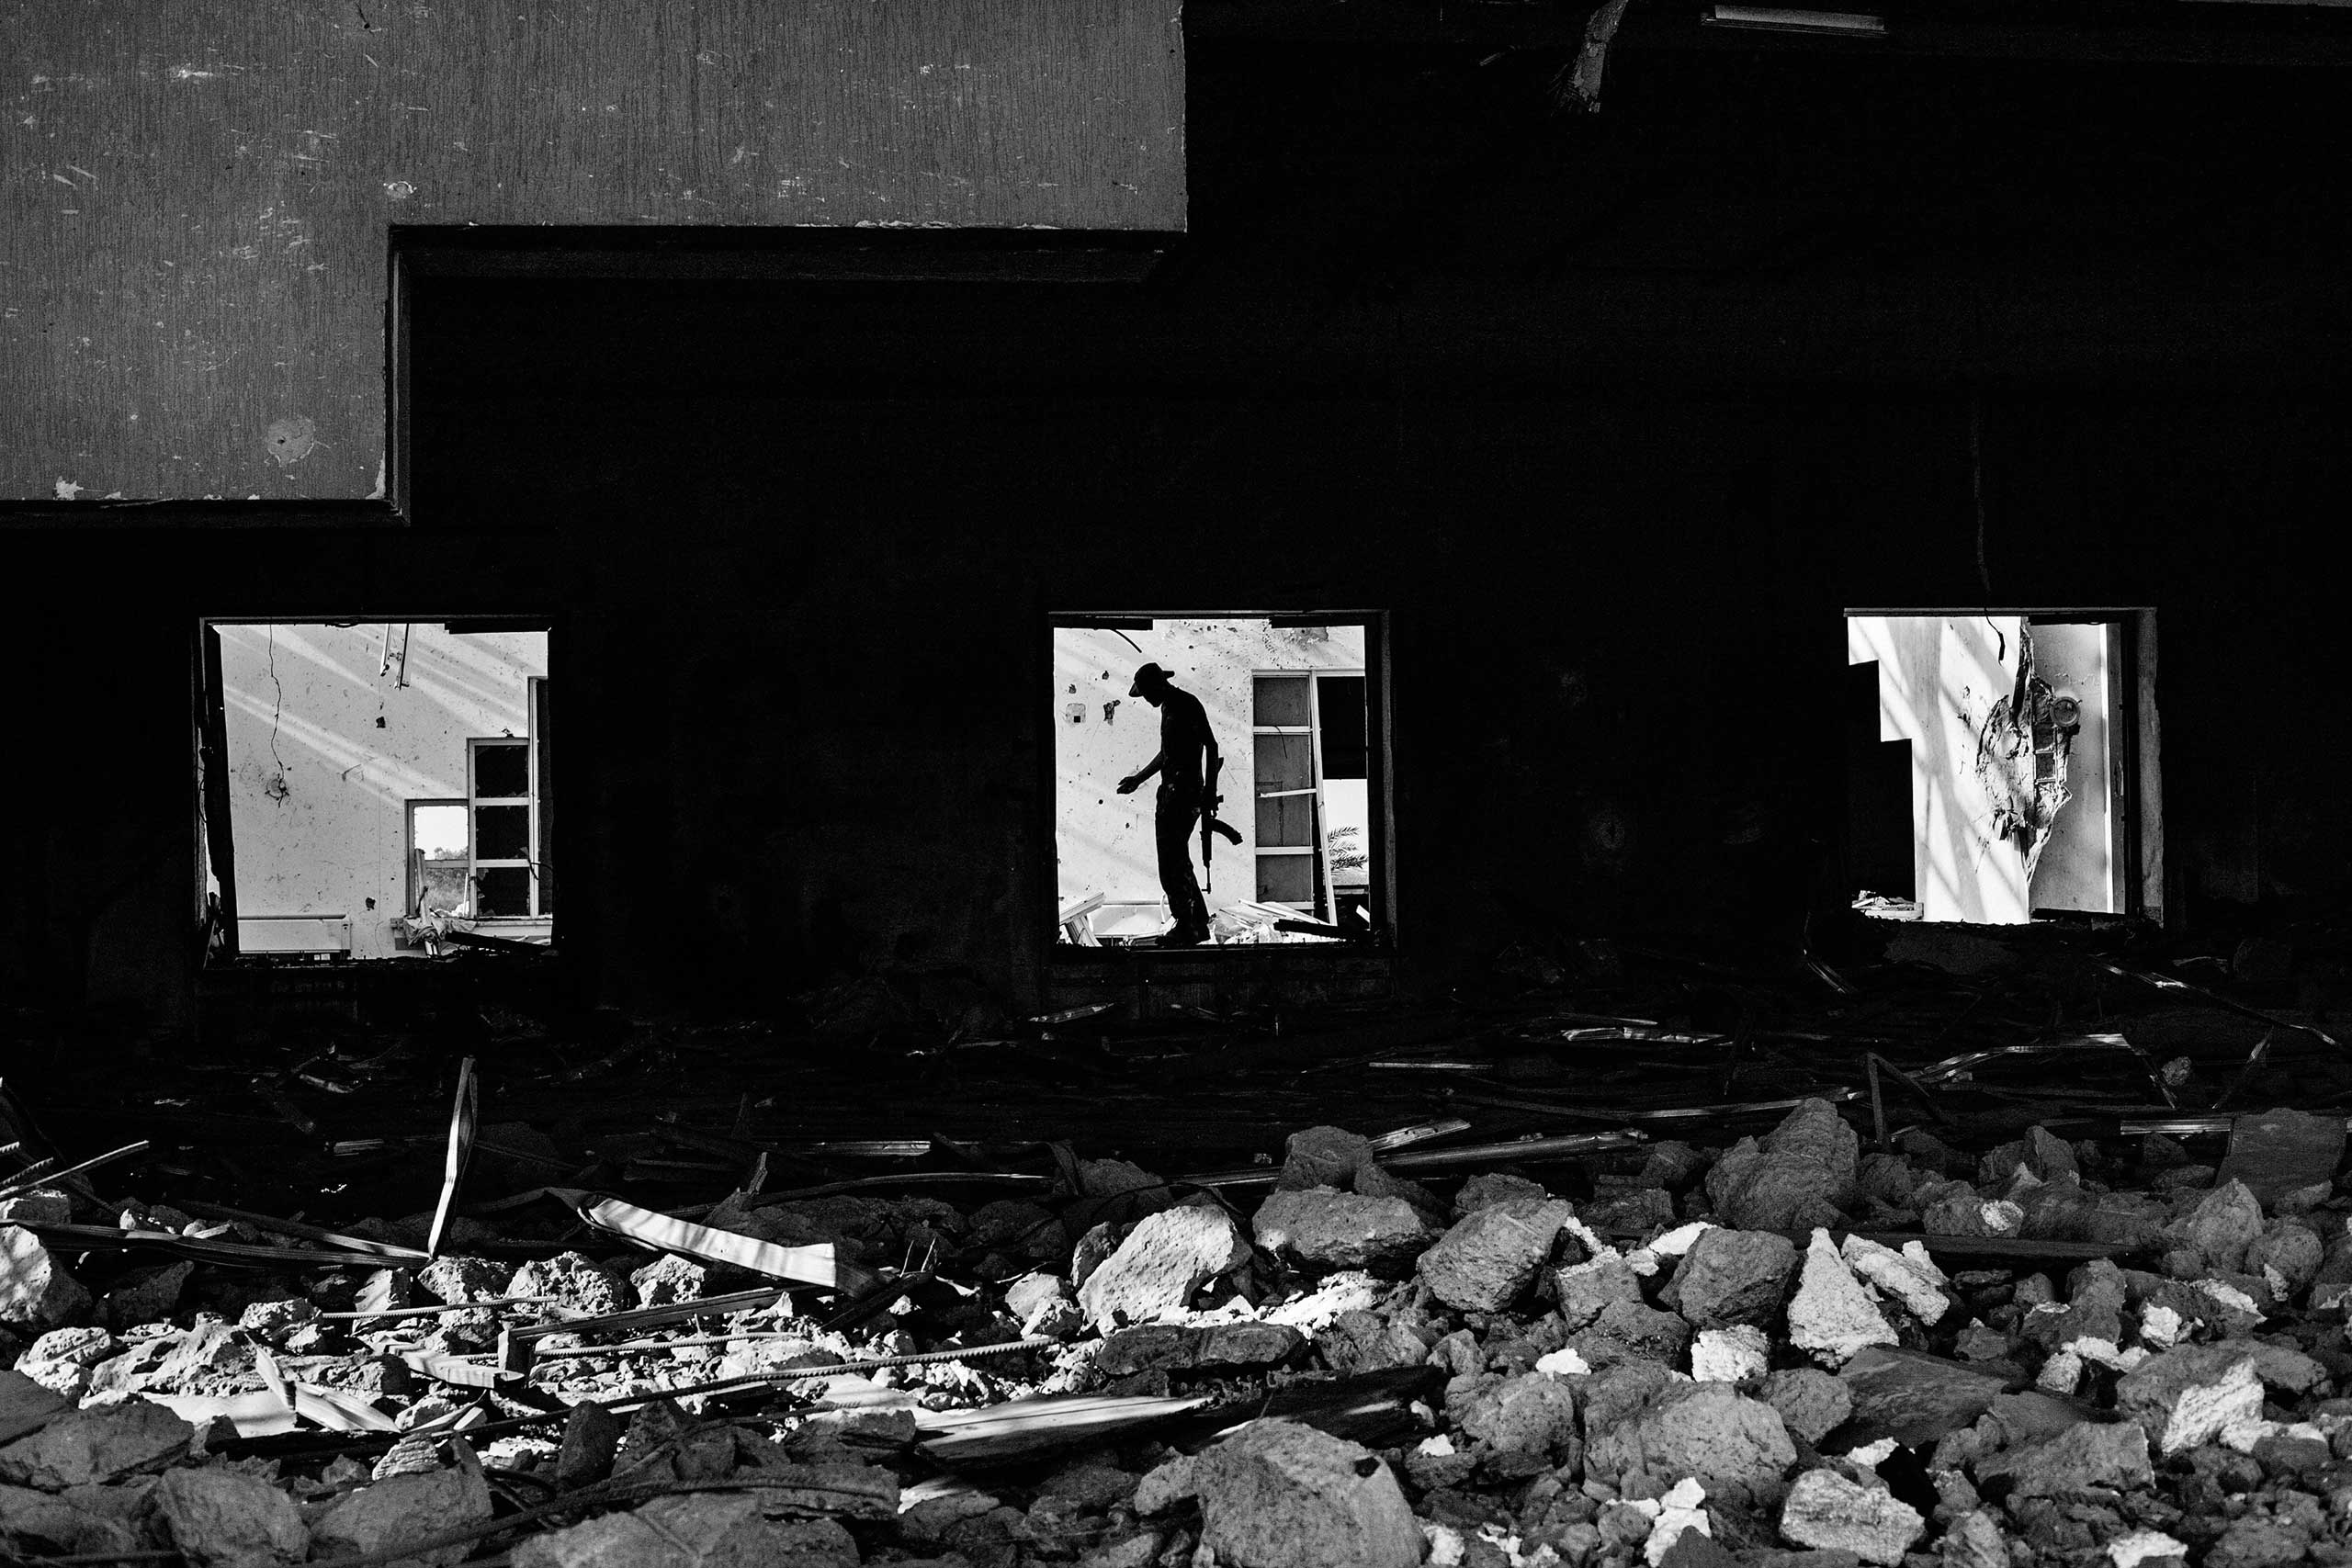 Libyan rebels during mopping up operation in a destroyed house in the outskirts of Sirte on October 20, 2011. The battle for Gaddafi's hometown was the last of the conflict. The rebels first captured Ougadougu and then entered Sirte. After nearly a month of fighting they conquered the city and, with the help of NATO bombing, capturing and killed Muammar Gaddafi.